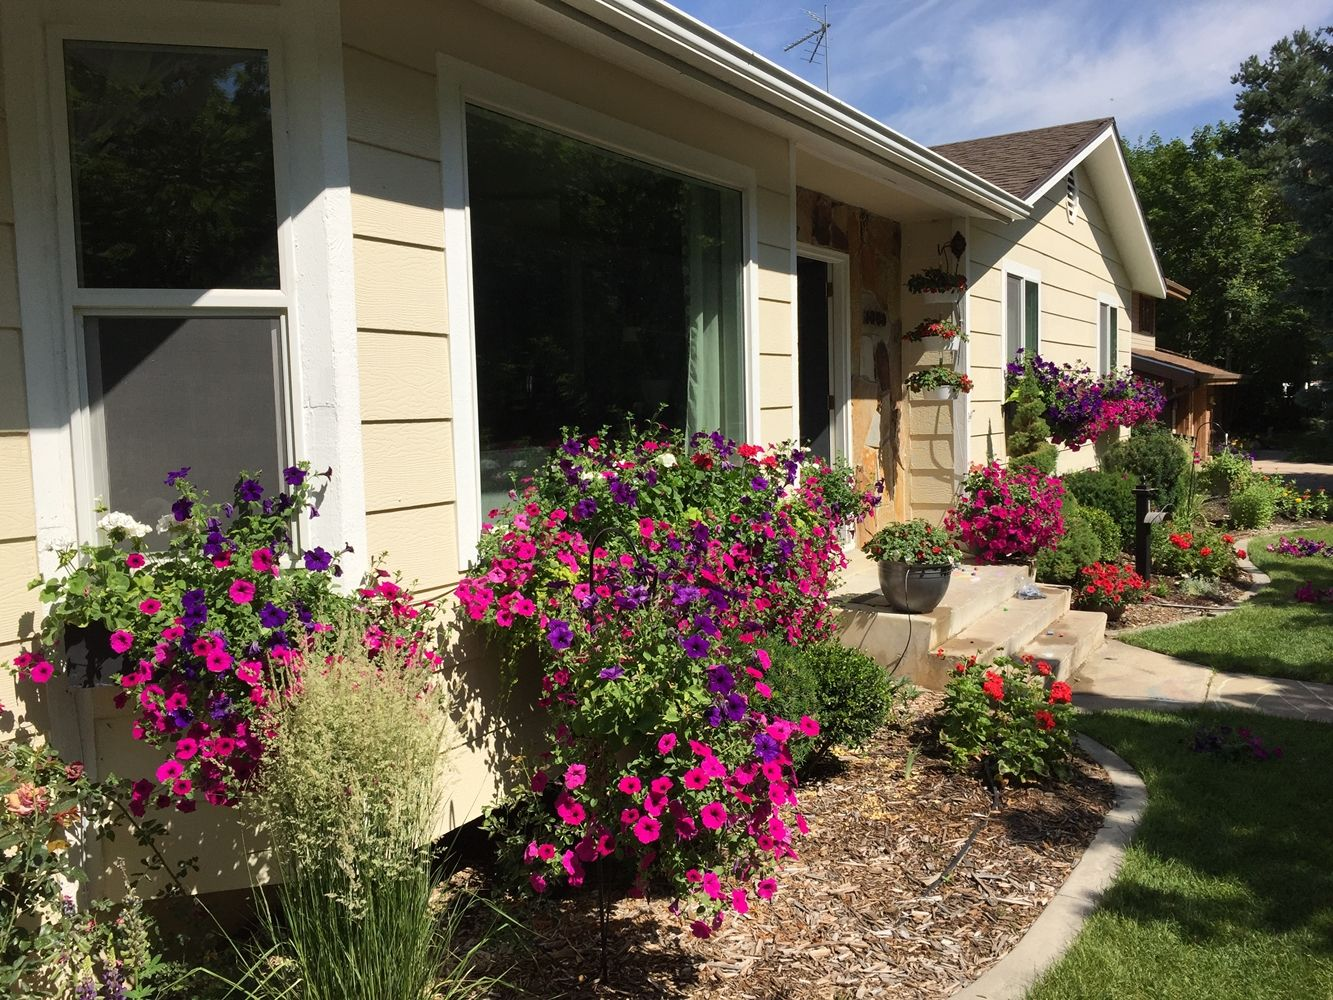 DIY Flower Bed Starts- decorate with flowers the exterior